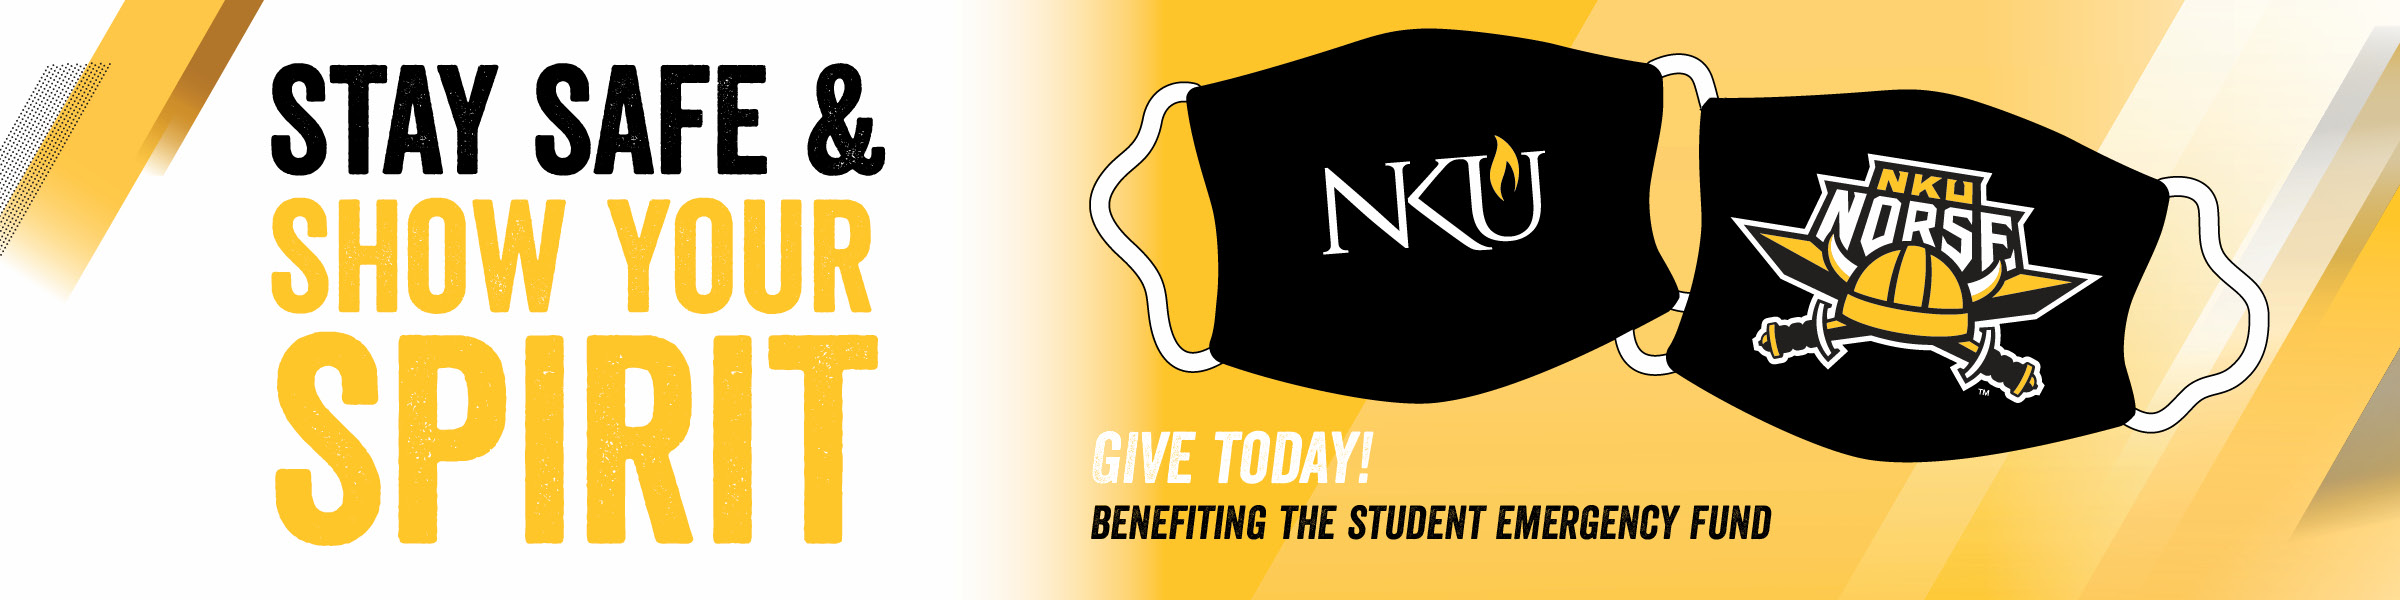 Stay Safe & Show Your Spirit.  Give today! Benefiting the Student Emergency Fund.